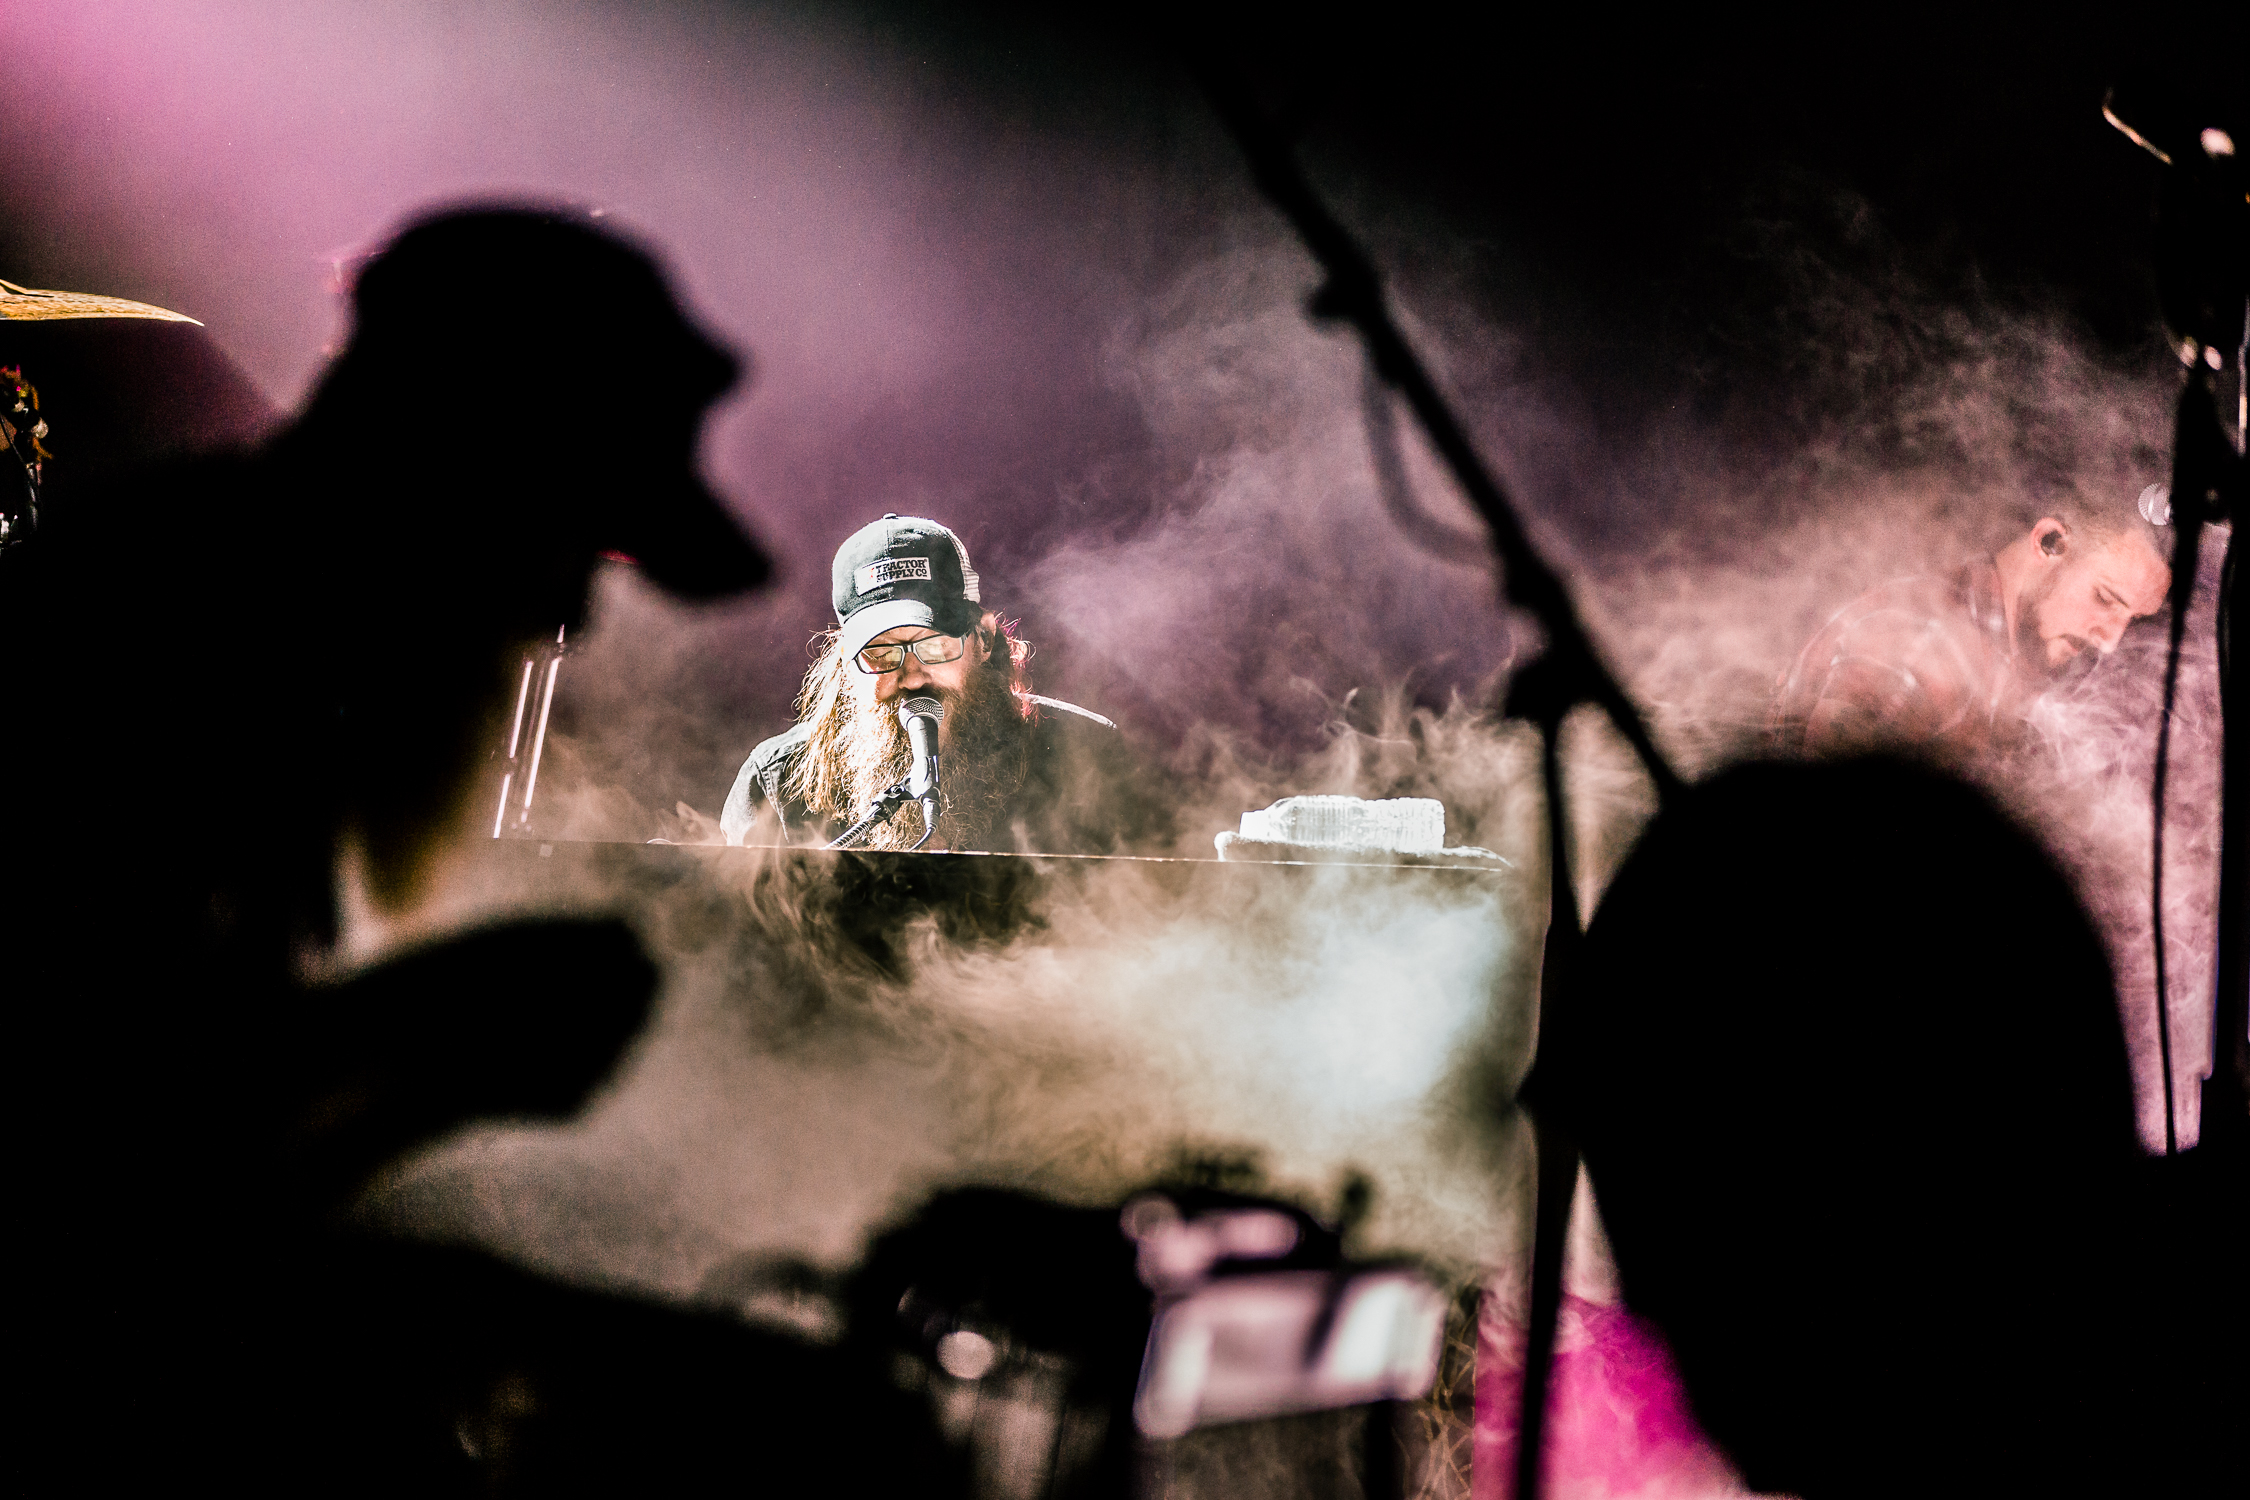 No pyrotechnics at Messiah College (yet...) but when the tech crew booted up the fog machine I knew I had to get this shot. I really like how by chance the fog was wrapped around Crowder but there was a nice opening to keep sharpness and detail on his face.